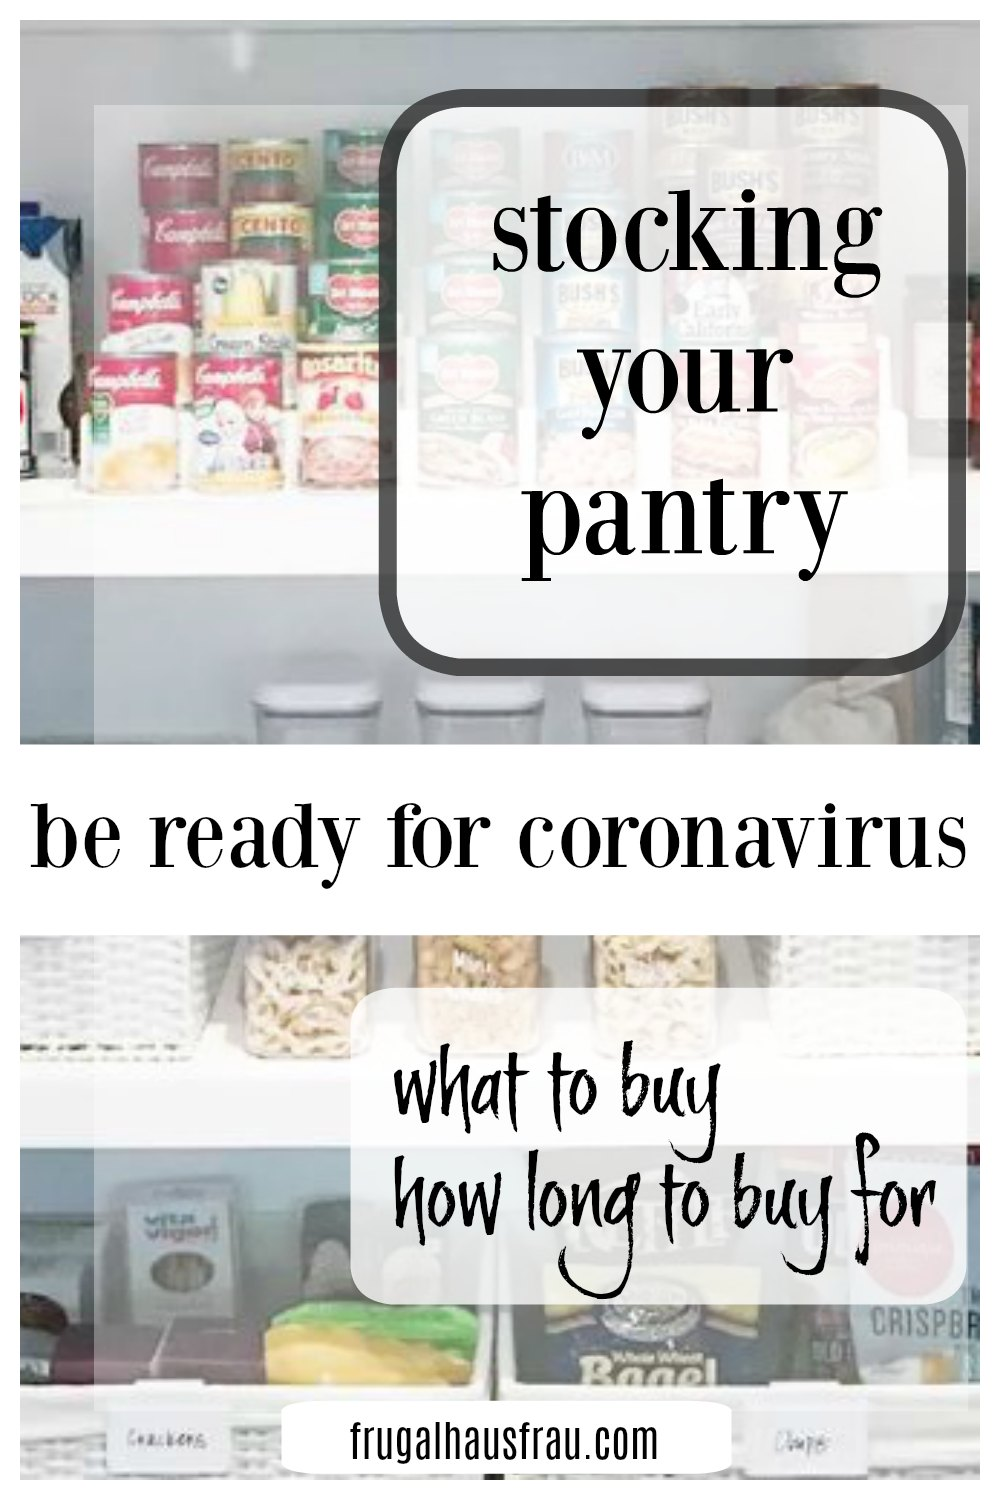 Take charge of your pantry, fridge & freezer while Stocking Up For the Corona Virus can be do-able! It's time to get going if you haven't yet. #ShopForCoronavirus #GetReadyForCoronavirus #StockPantryCoronaVirus #WhatToBuyCoronavirus